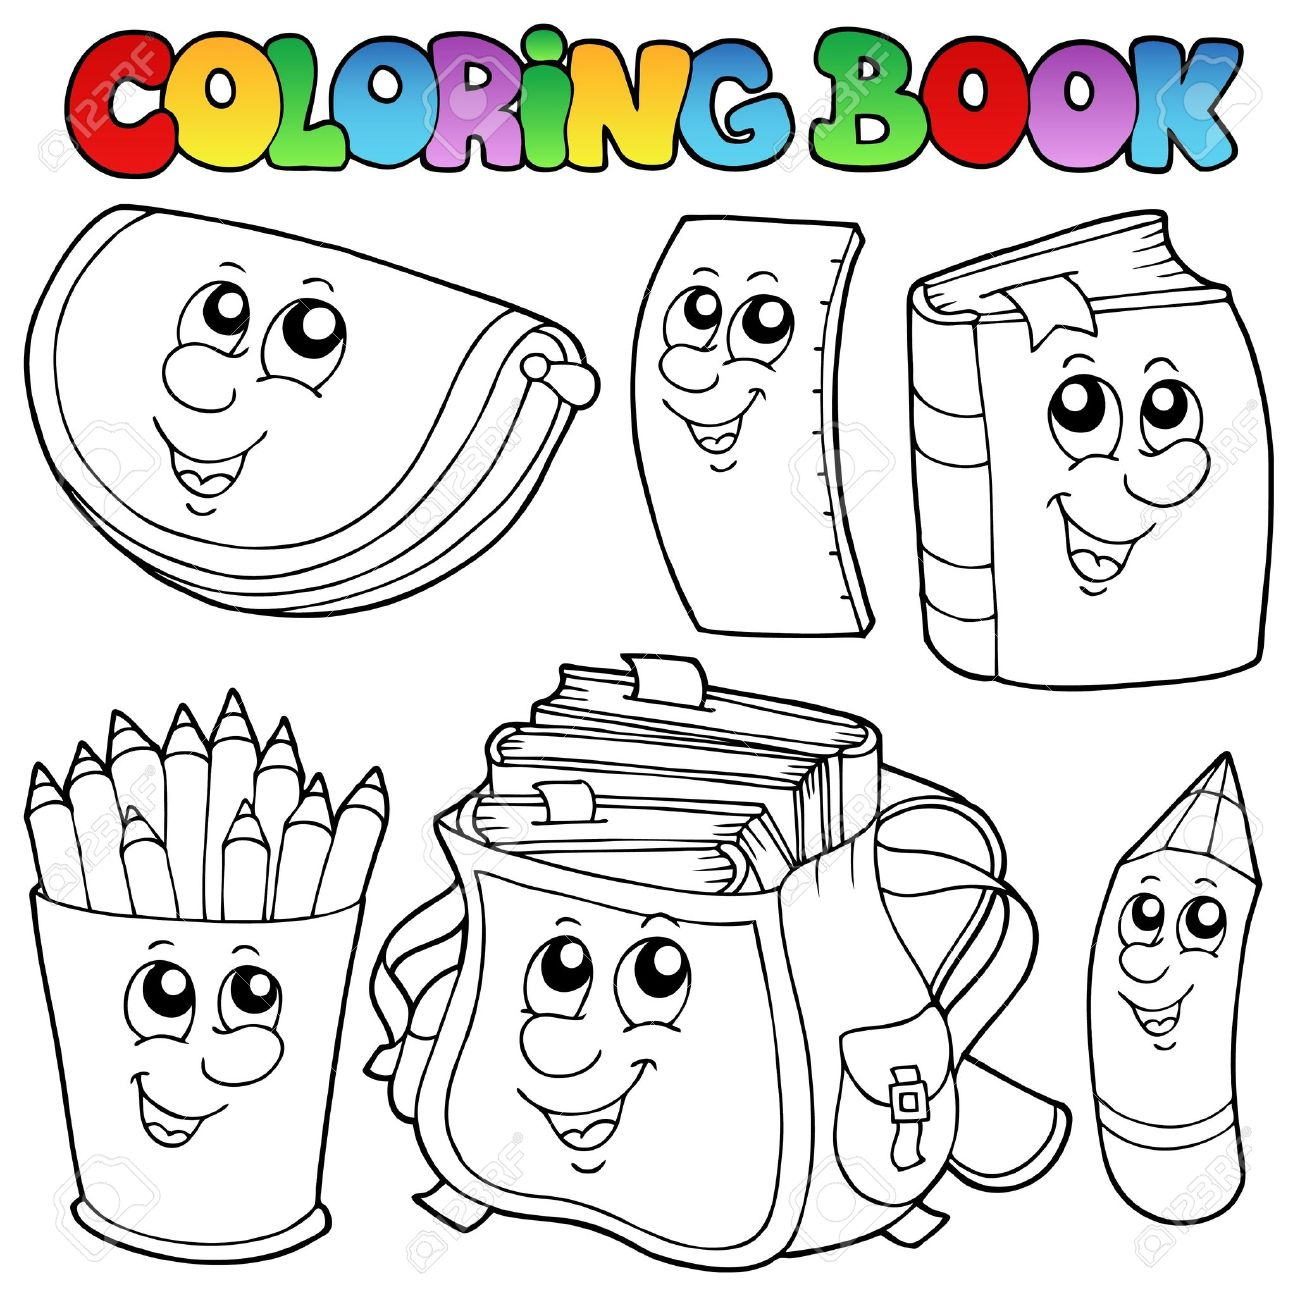 Coloring book school - Coloring Book School Cartoons Stock Vector 10354155